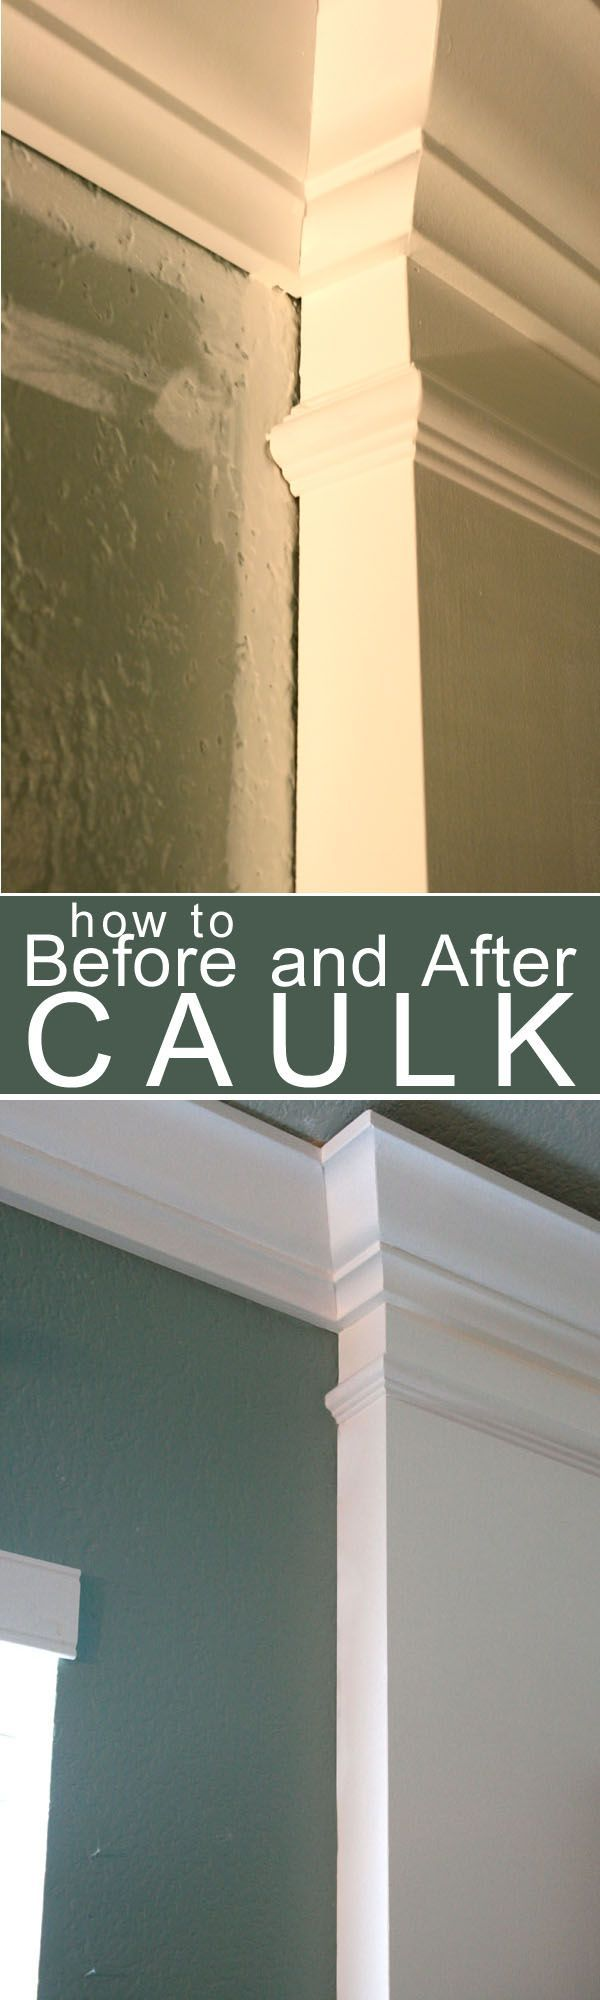 DIY How To Caulk Moldings.